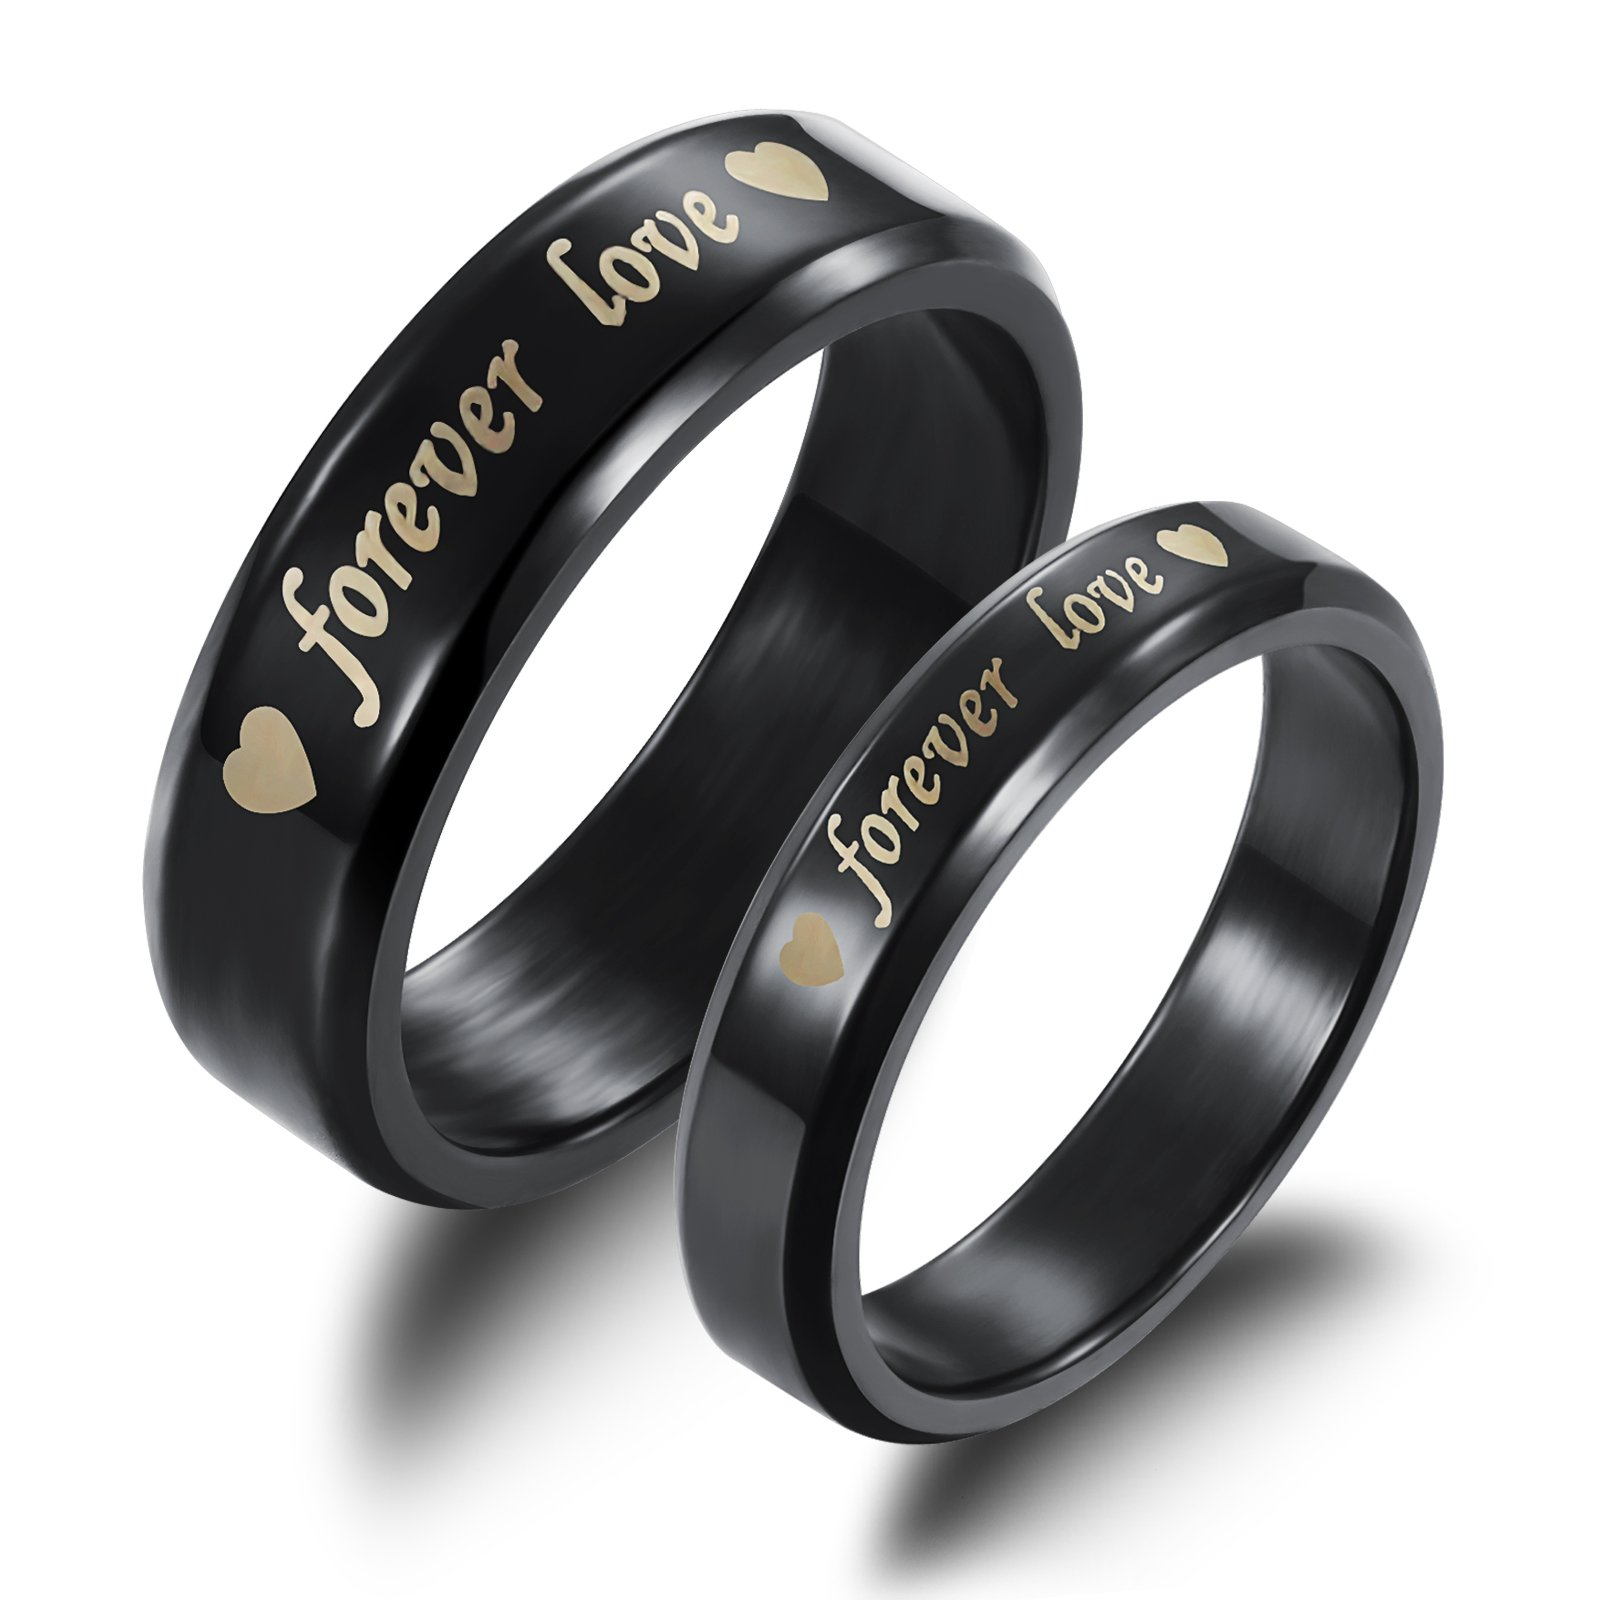 Fate Love Titanium Steel Black Forever Love Double Heart Couples Promise Ring Romantic Couples Gift